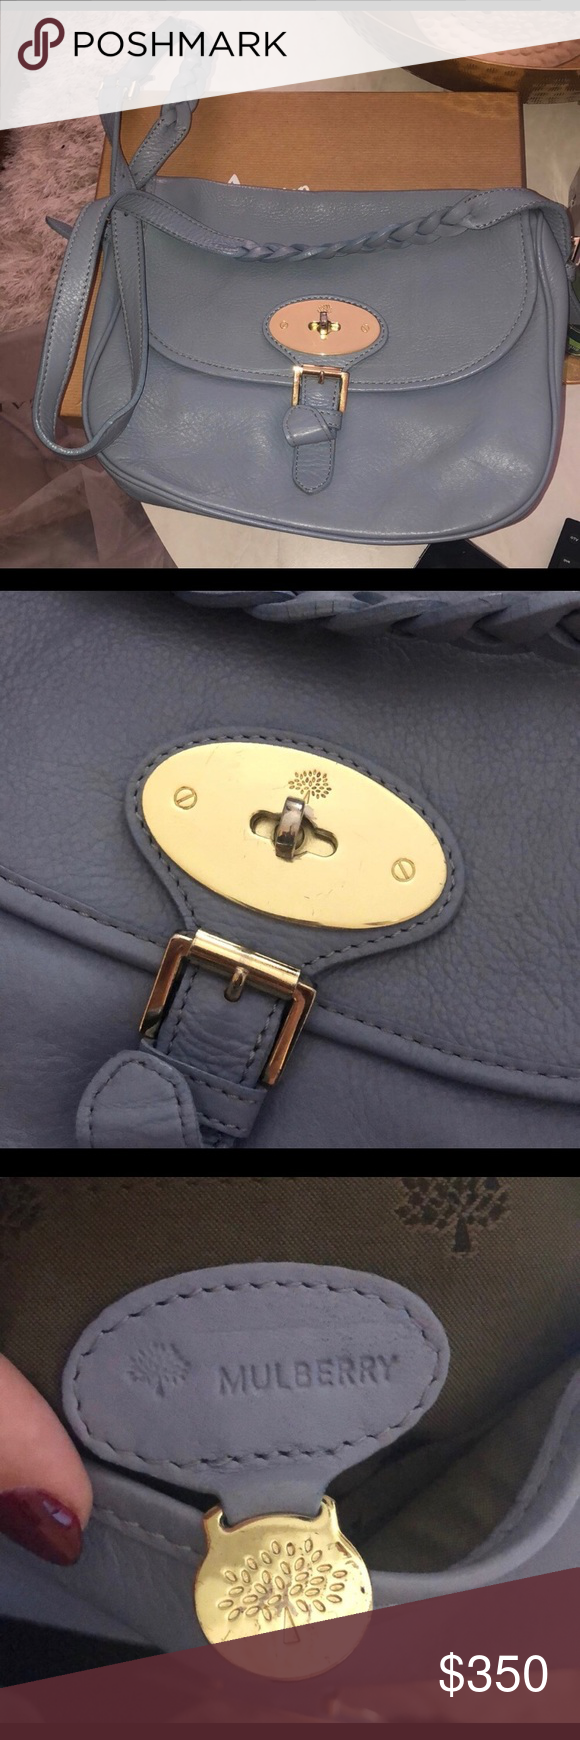 Mulberry blue satchel cross body bag Authentic mulberry bag Mulberry Bags Crossbody Bags #mulberrybag Mulberry blue satchel cross body bag Authentic mulberry bag Mulberry Bags Crossbody Bags #mulberrybag Mulberry blue satchel cross body bag Authentic mulberry bag Mulberry Bags Crossbody Bags #mulberrybag Mulberry blue satchel cross body bag Authentic mulberry bag Mulberry Bags Crossbody Bags #mulberrybag